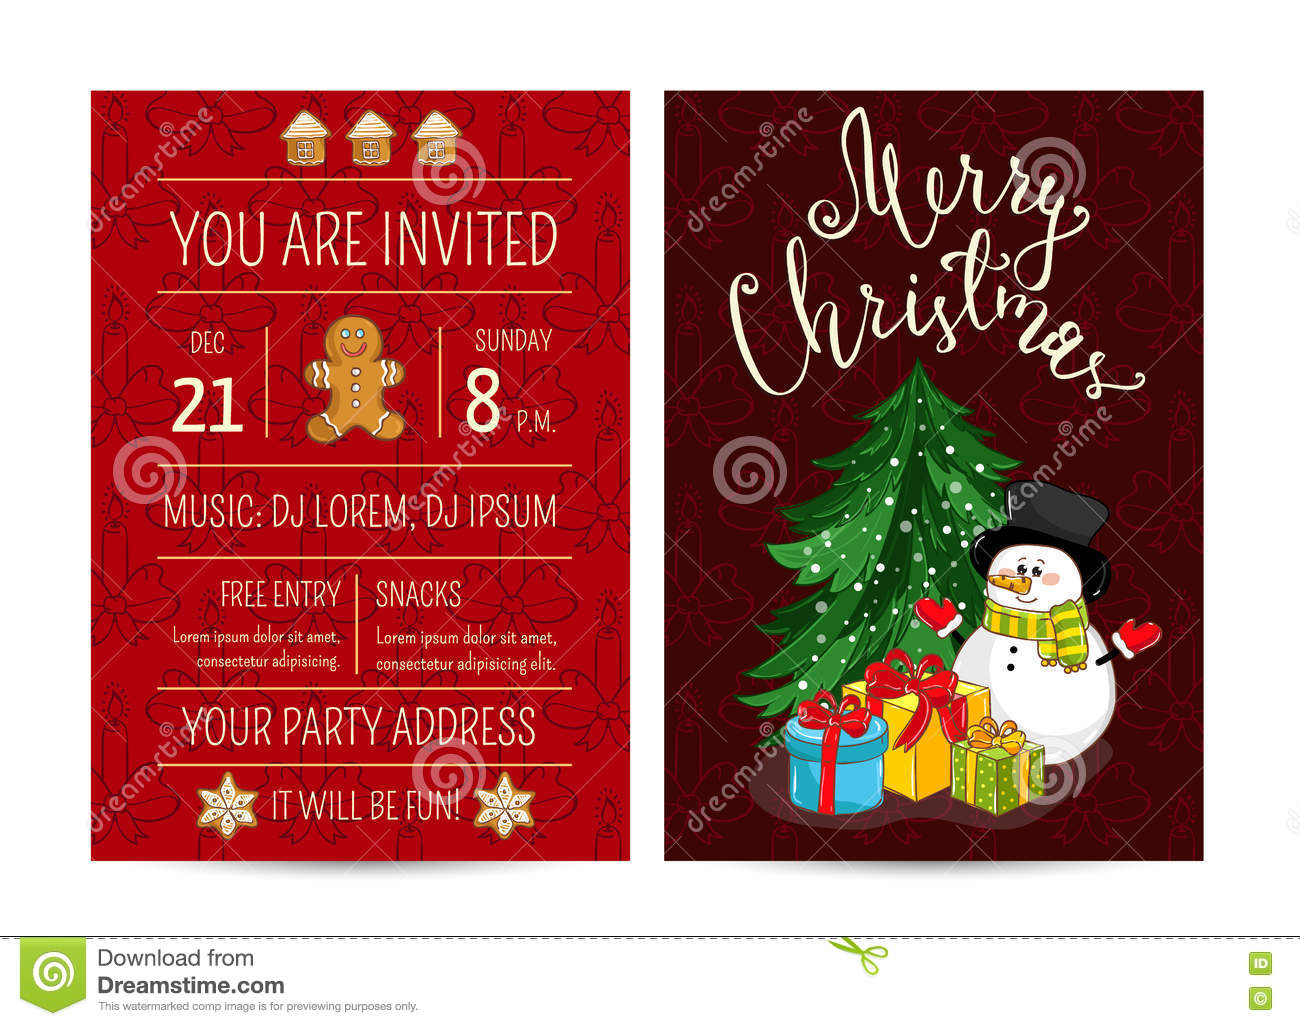 Cute Christmas Party.Personal Offer To Join Corporate Christmas Party Stock